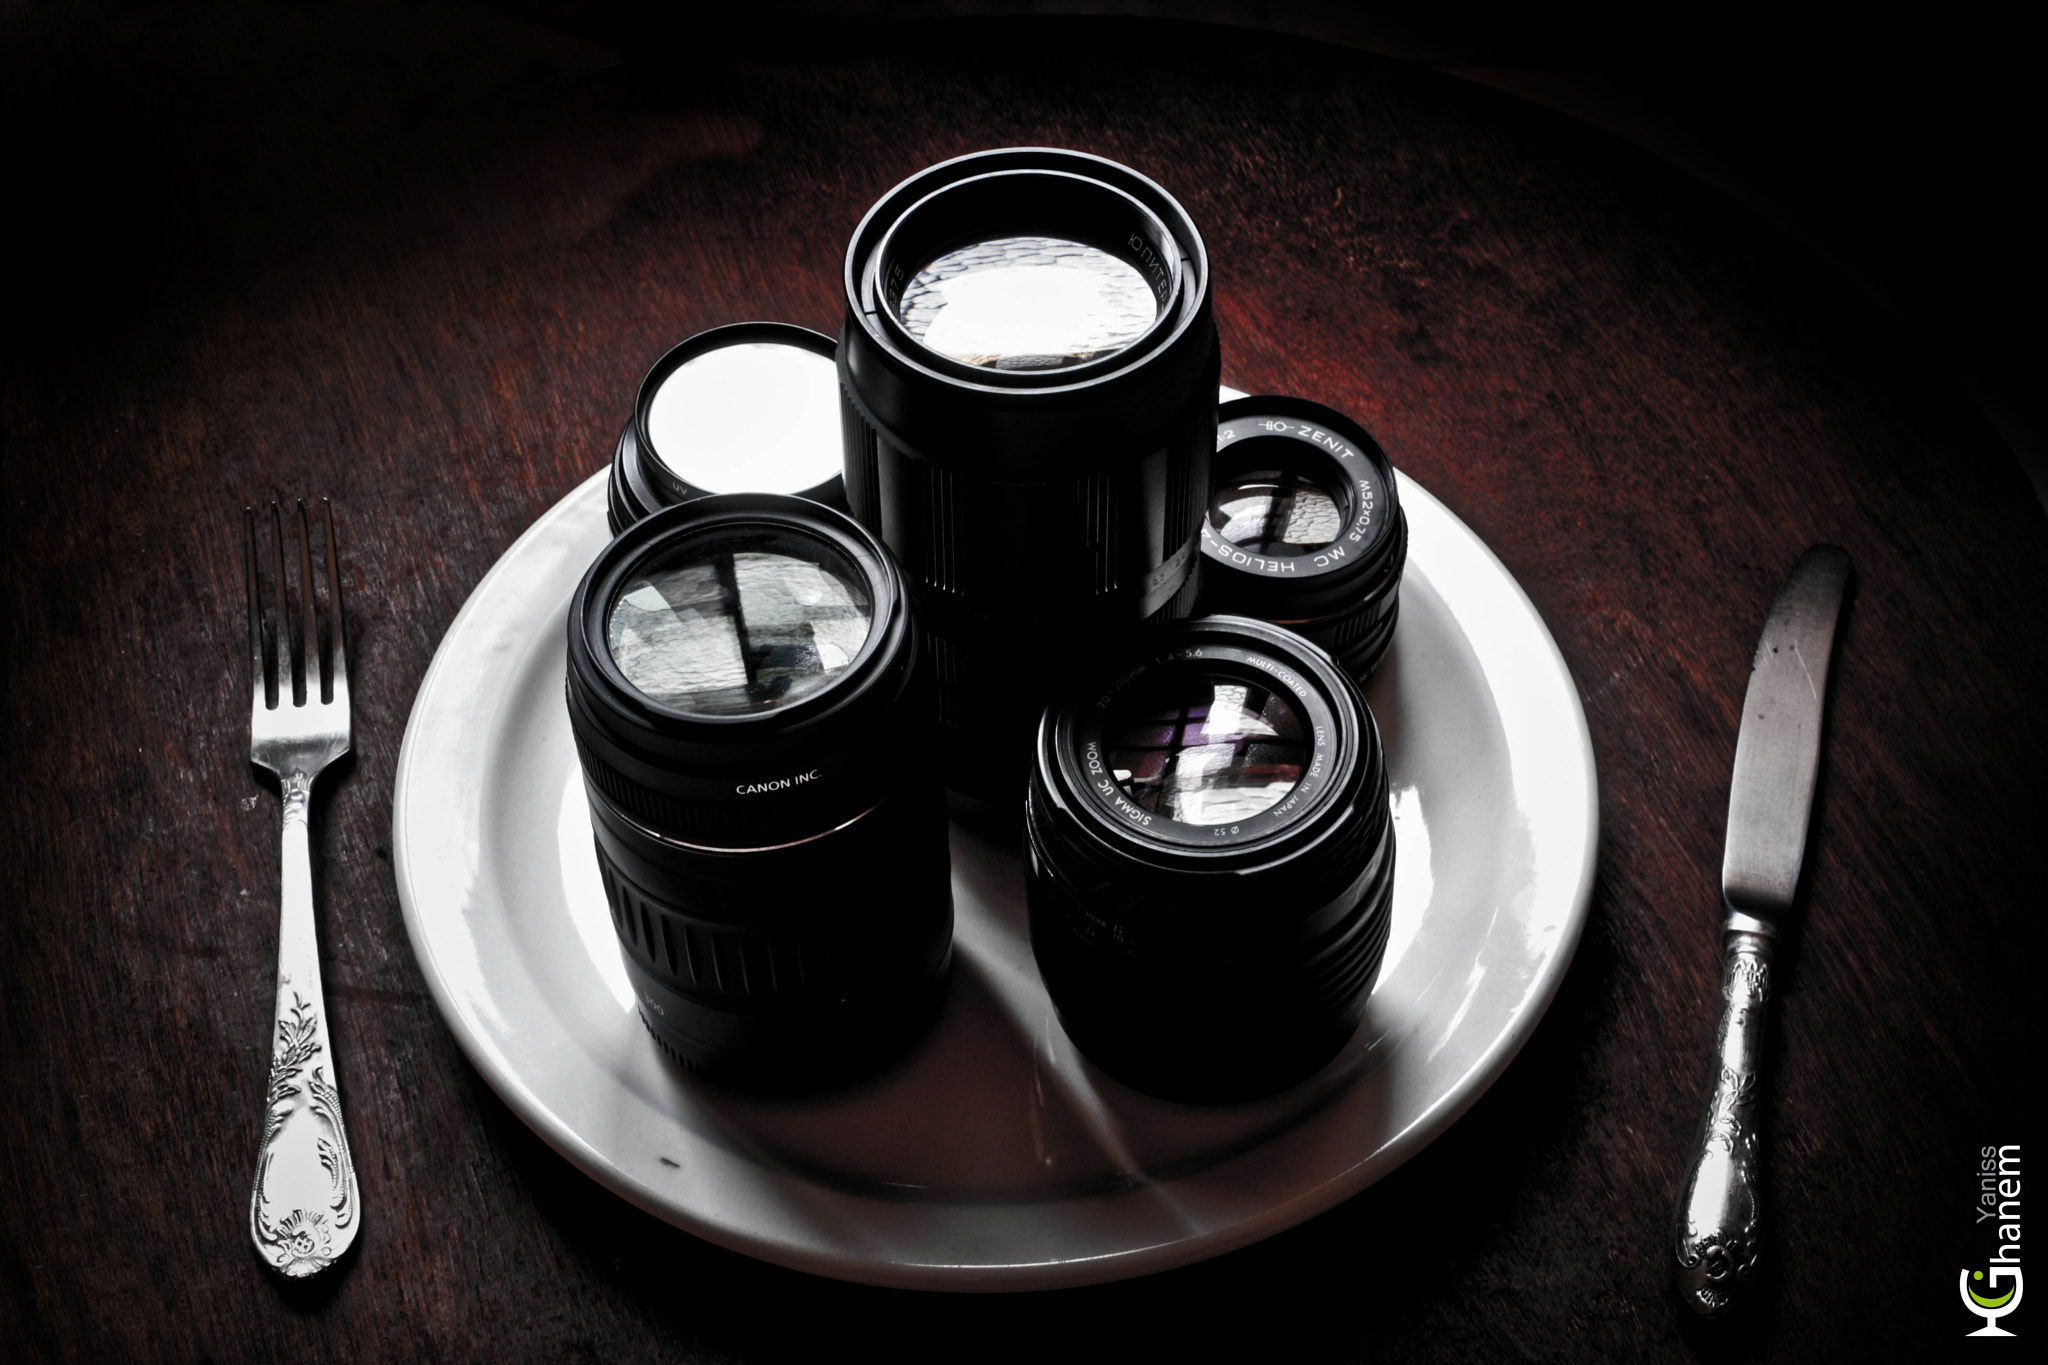 Photograph Lens Food by Yaniss Ghanem on 500px